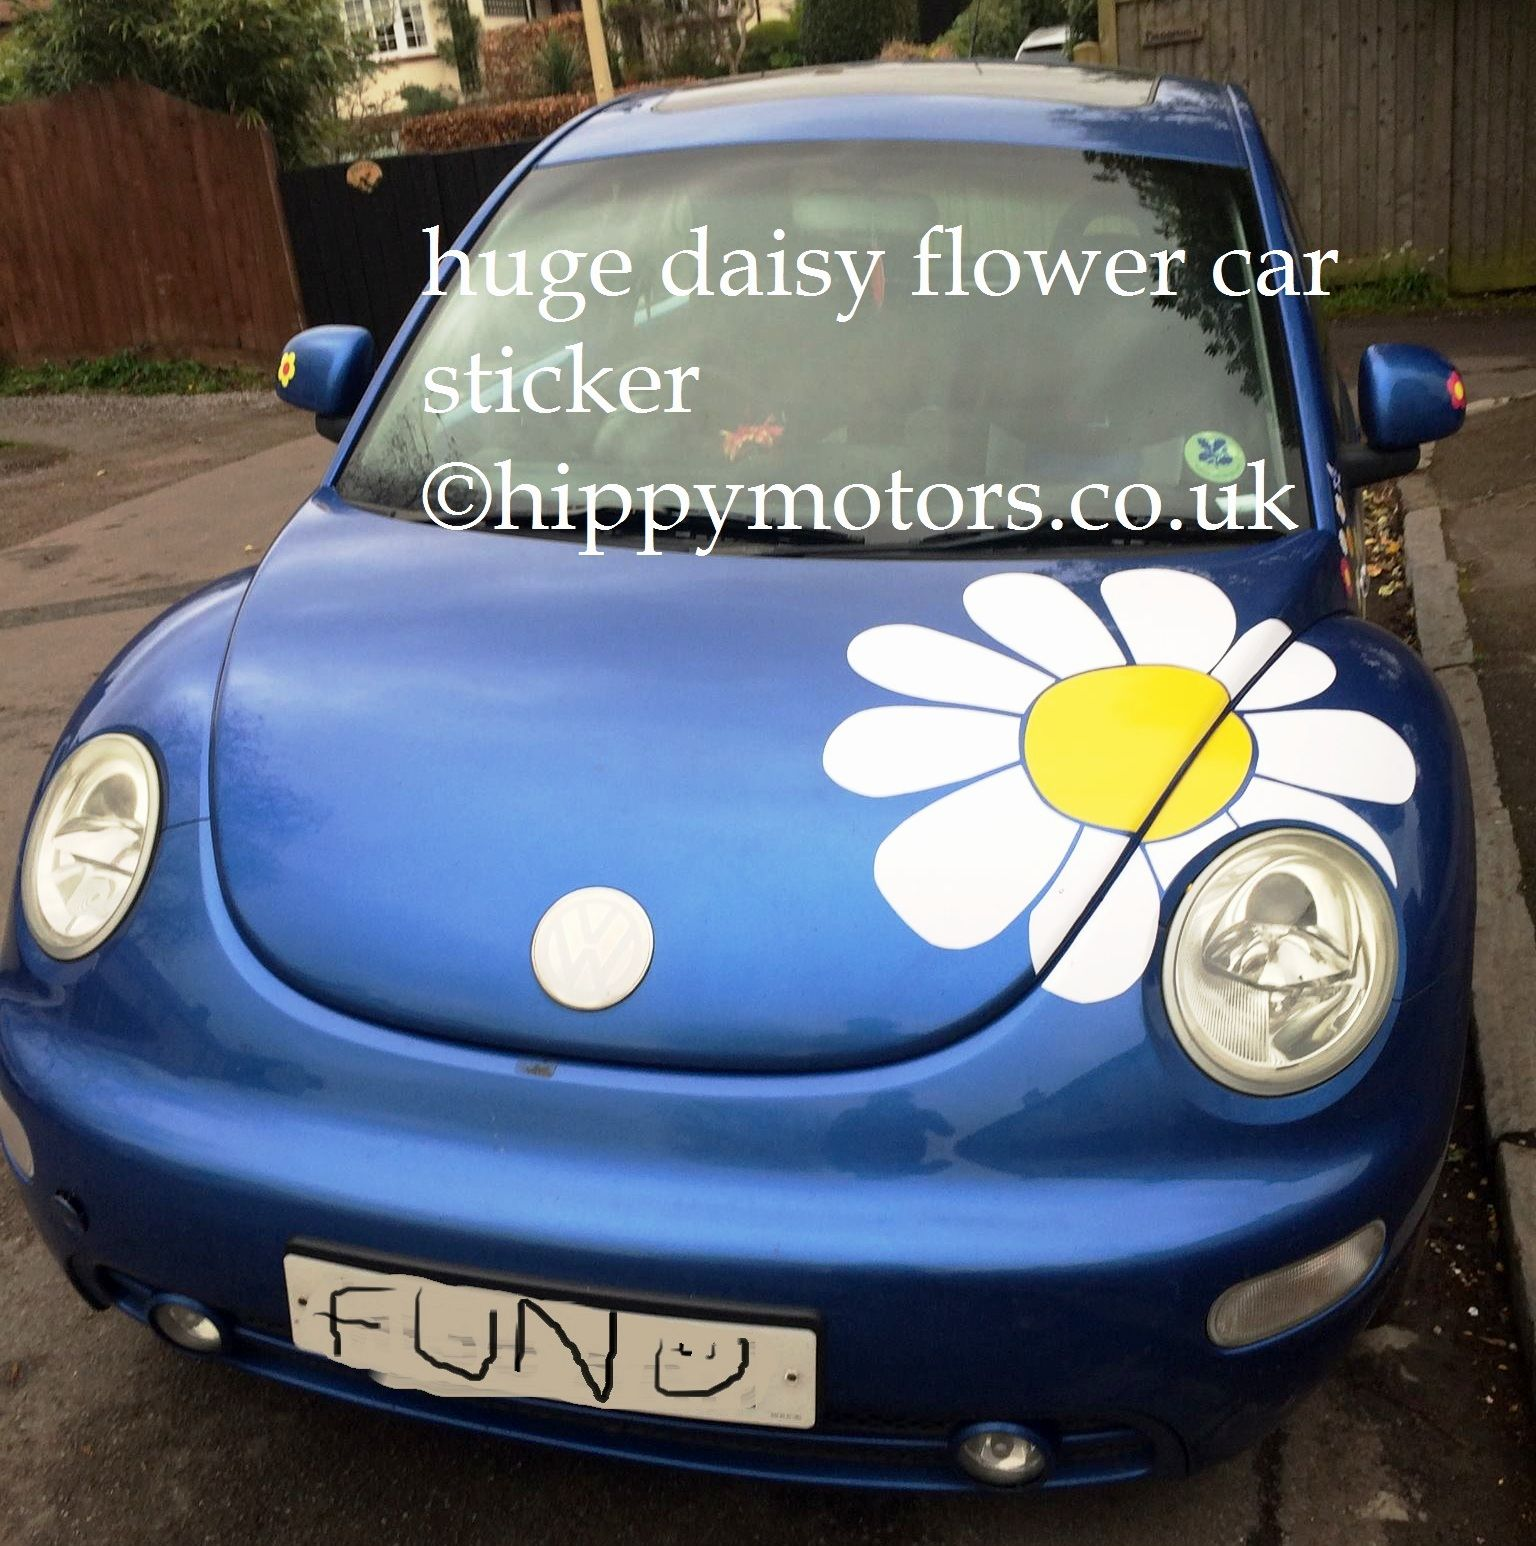 Huge daisy car sticker decal perfect for a beetle vw by hippymotors co uk